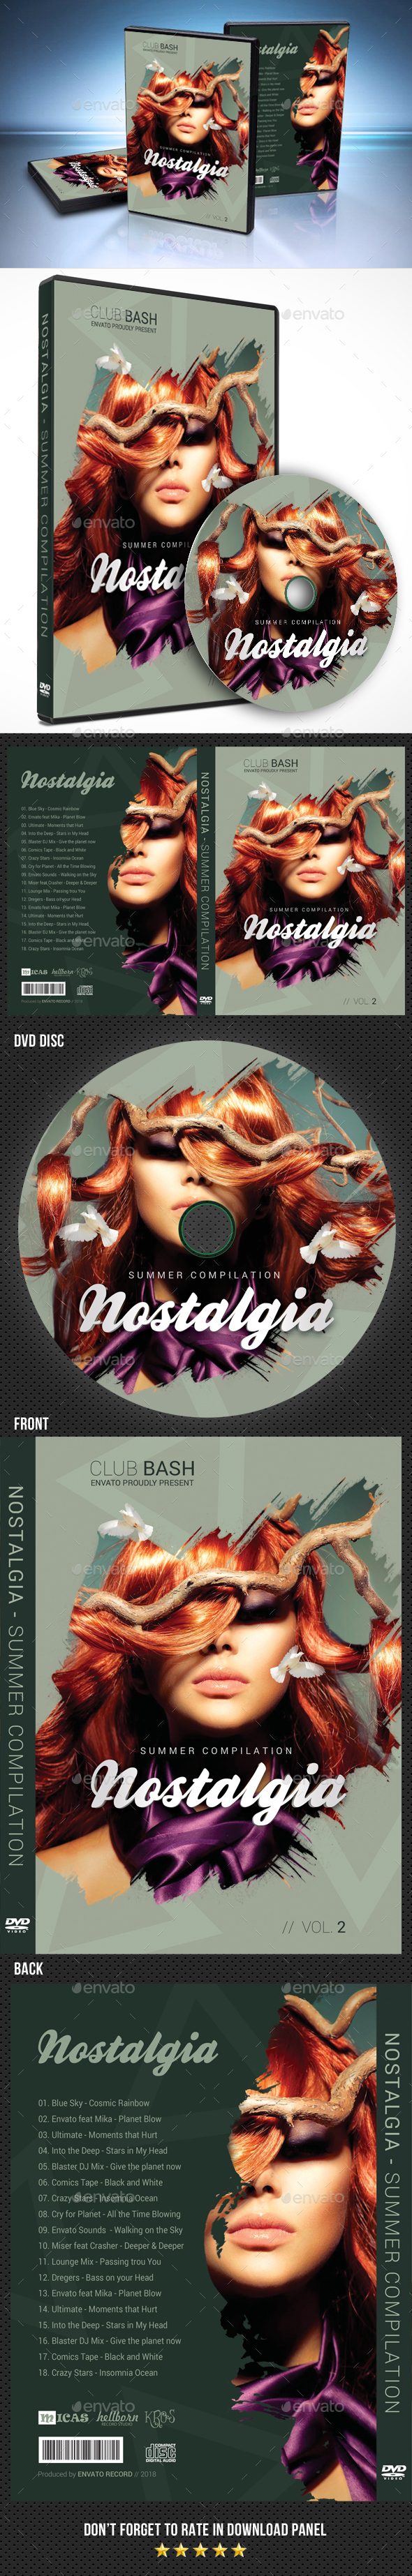 Nostalgia DVD Cover Template - CD & DVD Artwork Print Templates